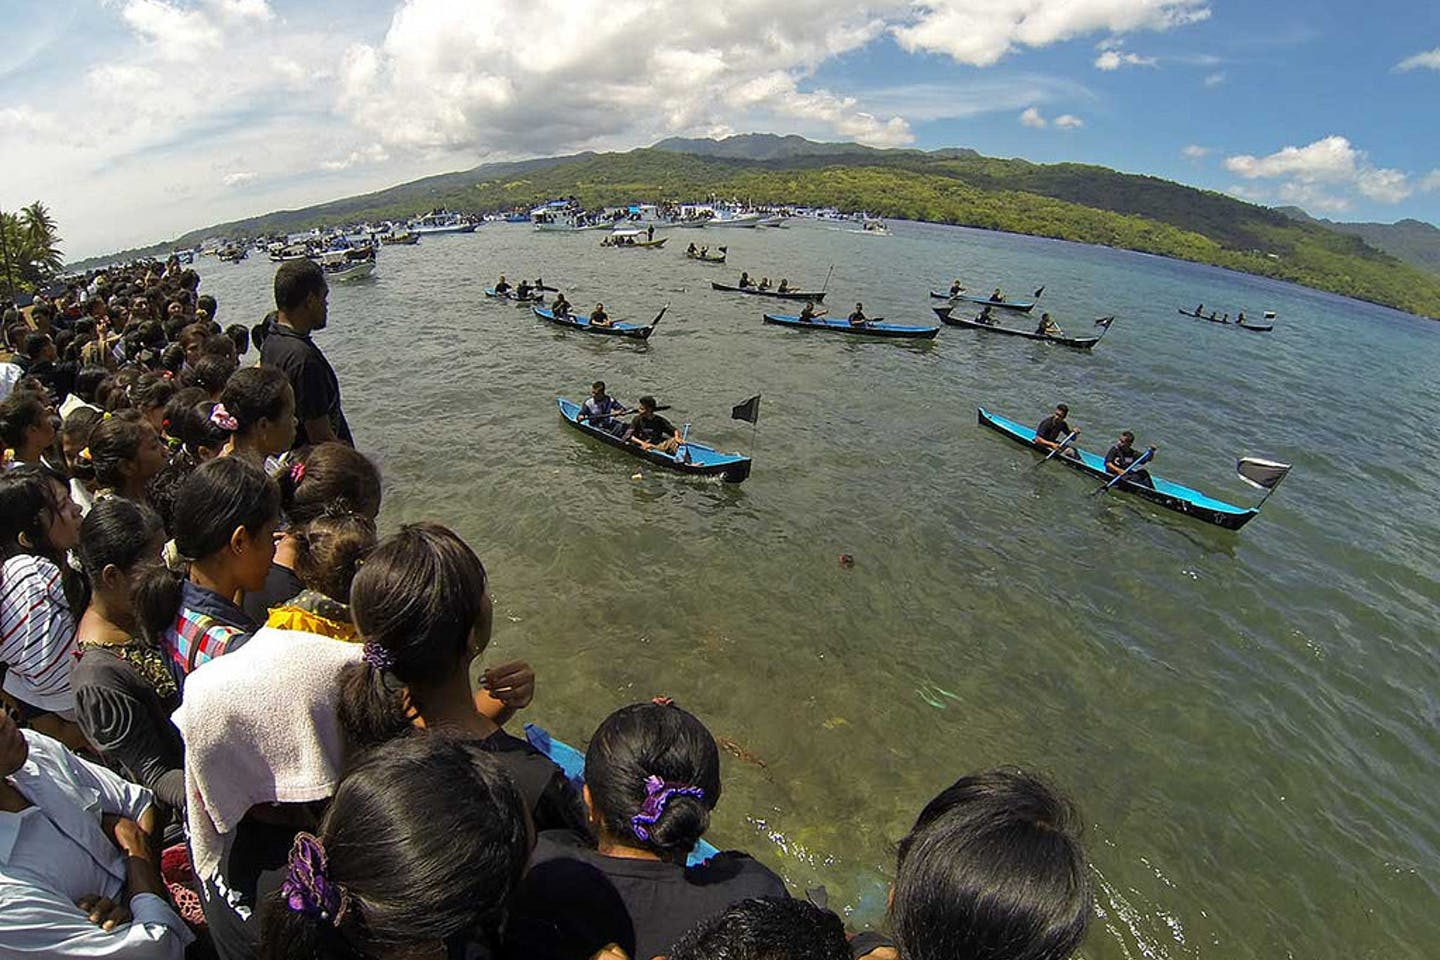 """The Larantuka Strait, which by 2019 is to be connected by an 800 metre-long bridge with a built-in 115 MW-capacity tidal power plant. <a href=""""picture hyperlink"""">Johanes Randy Prakoso</a>, <a href=""""https://creativecommons.org/licenses/by-nc-nd/2.0/</a>"""